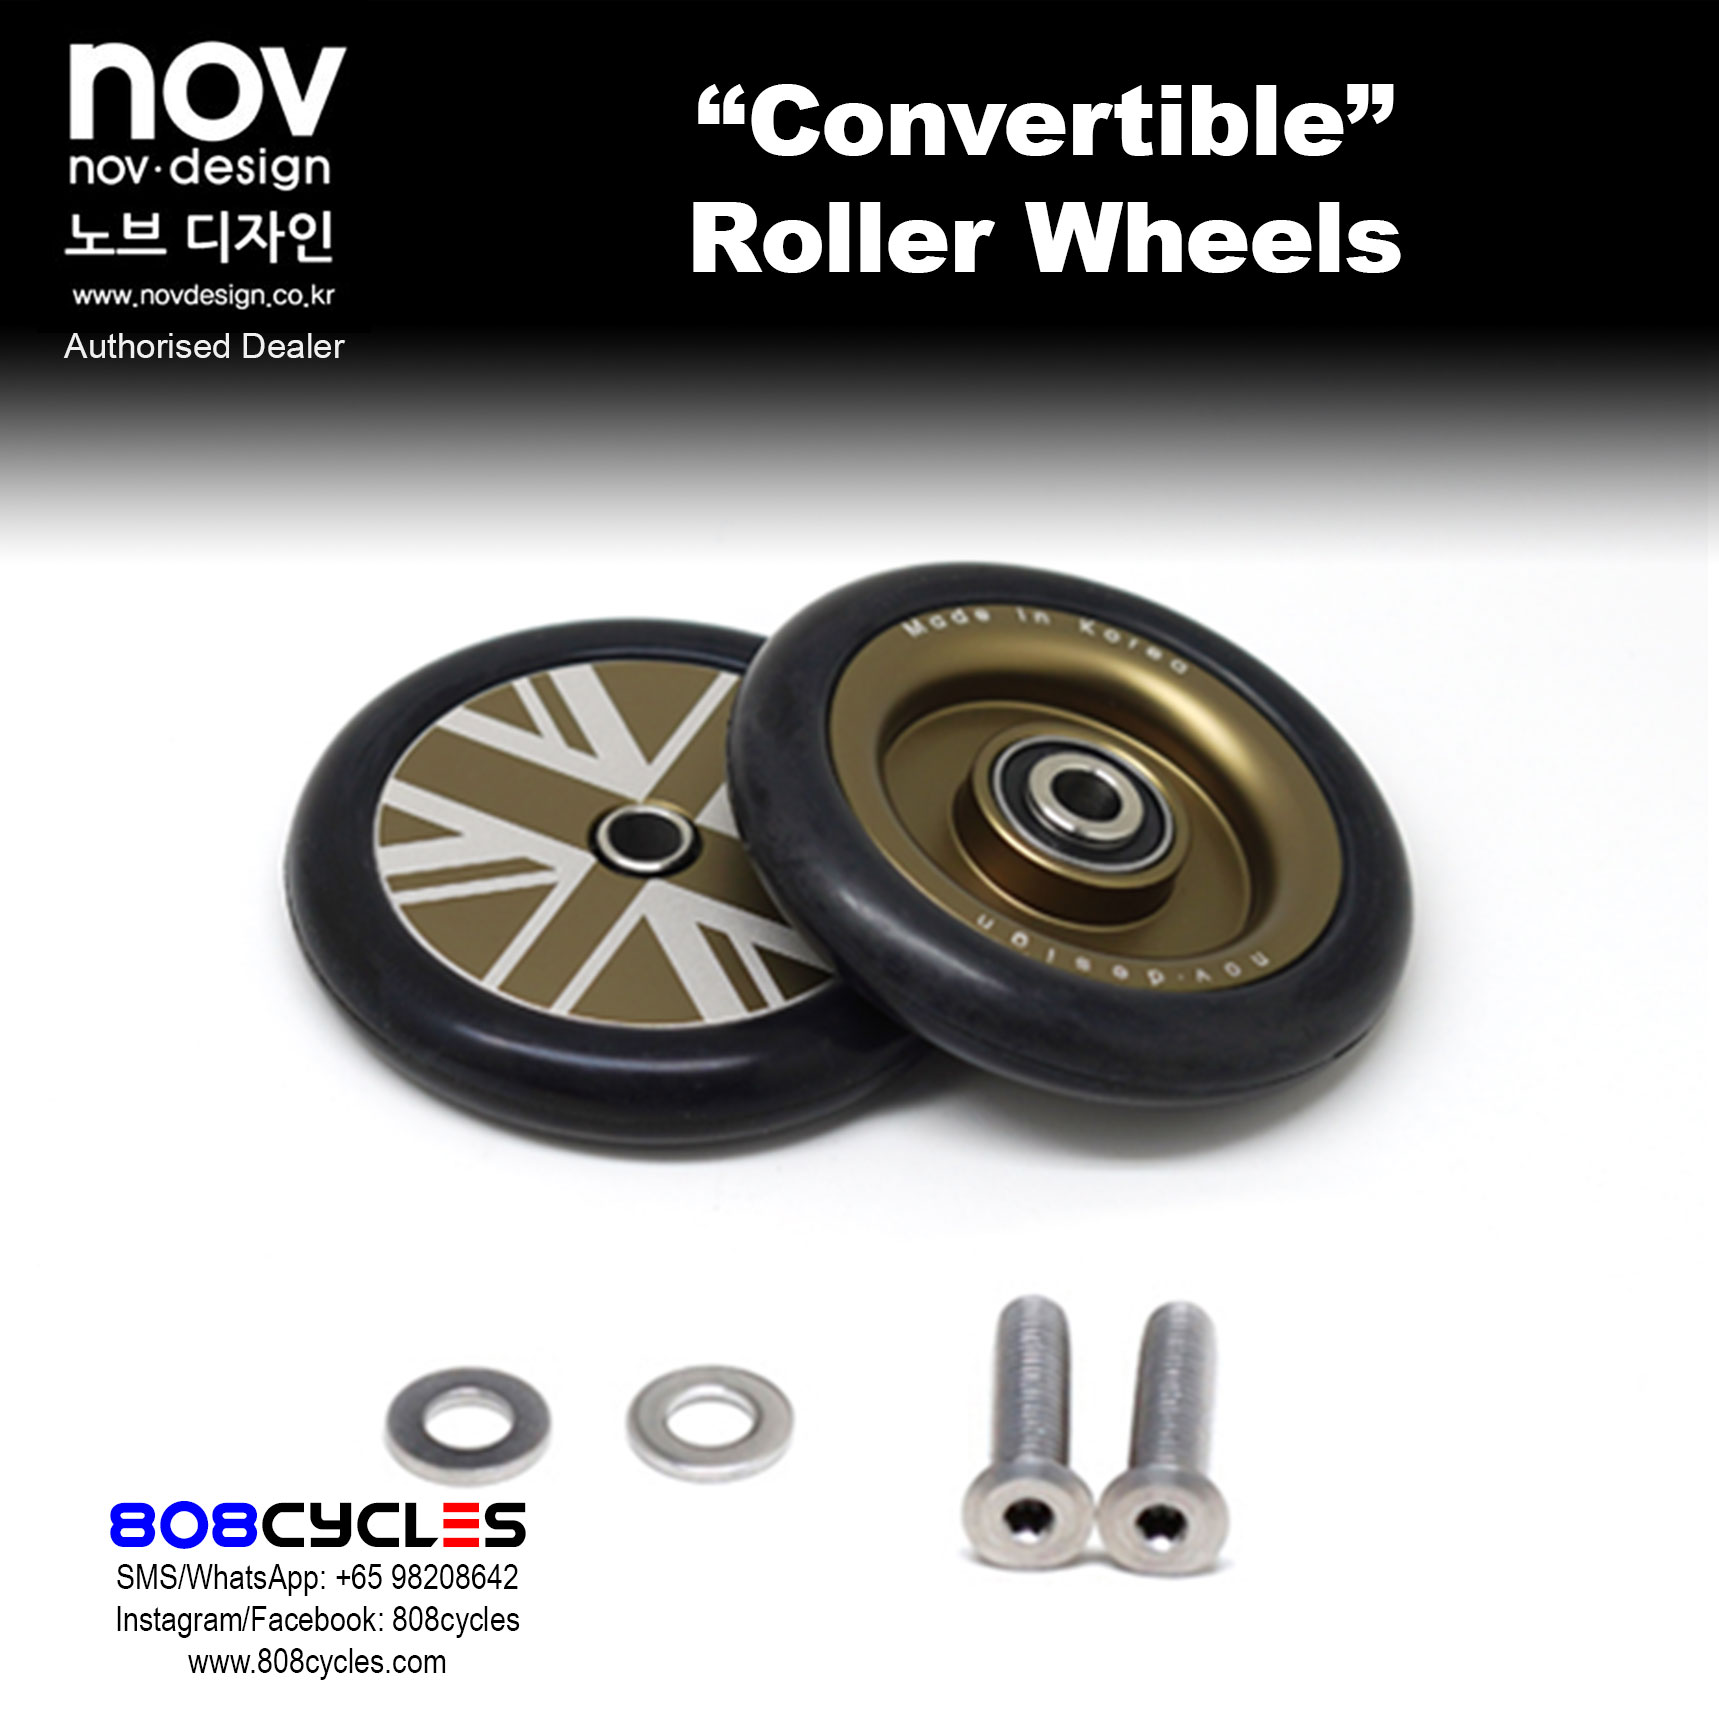 novdesign 4pcs nov wheel nov wheel CONVERTIBLE set for R-type Brompton